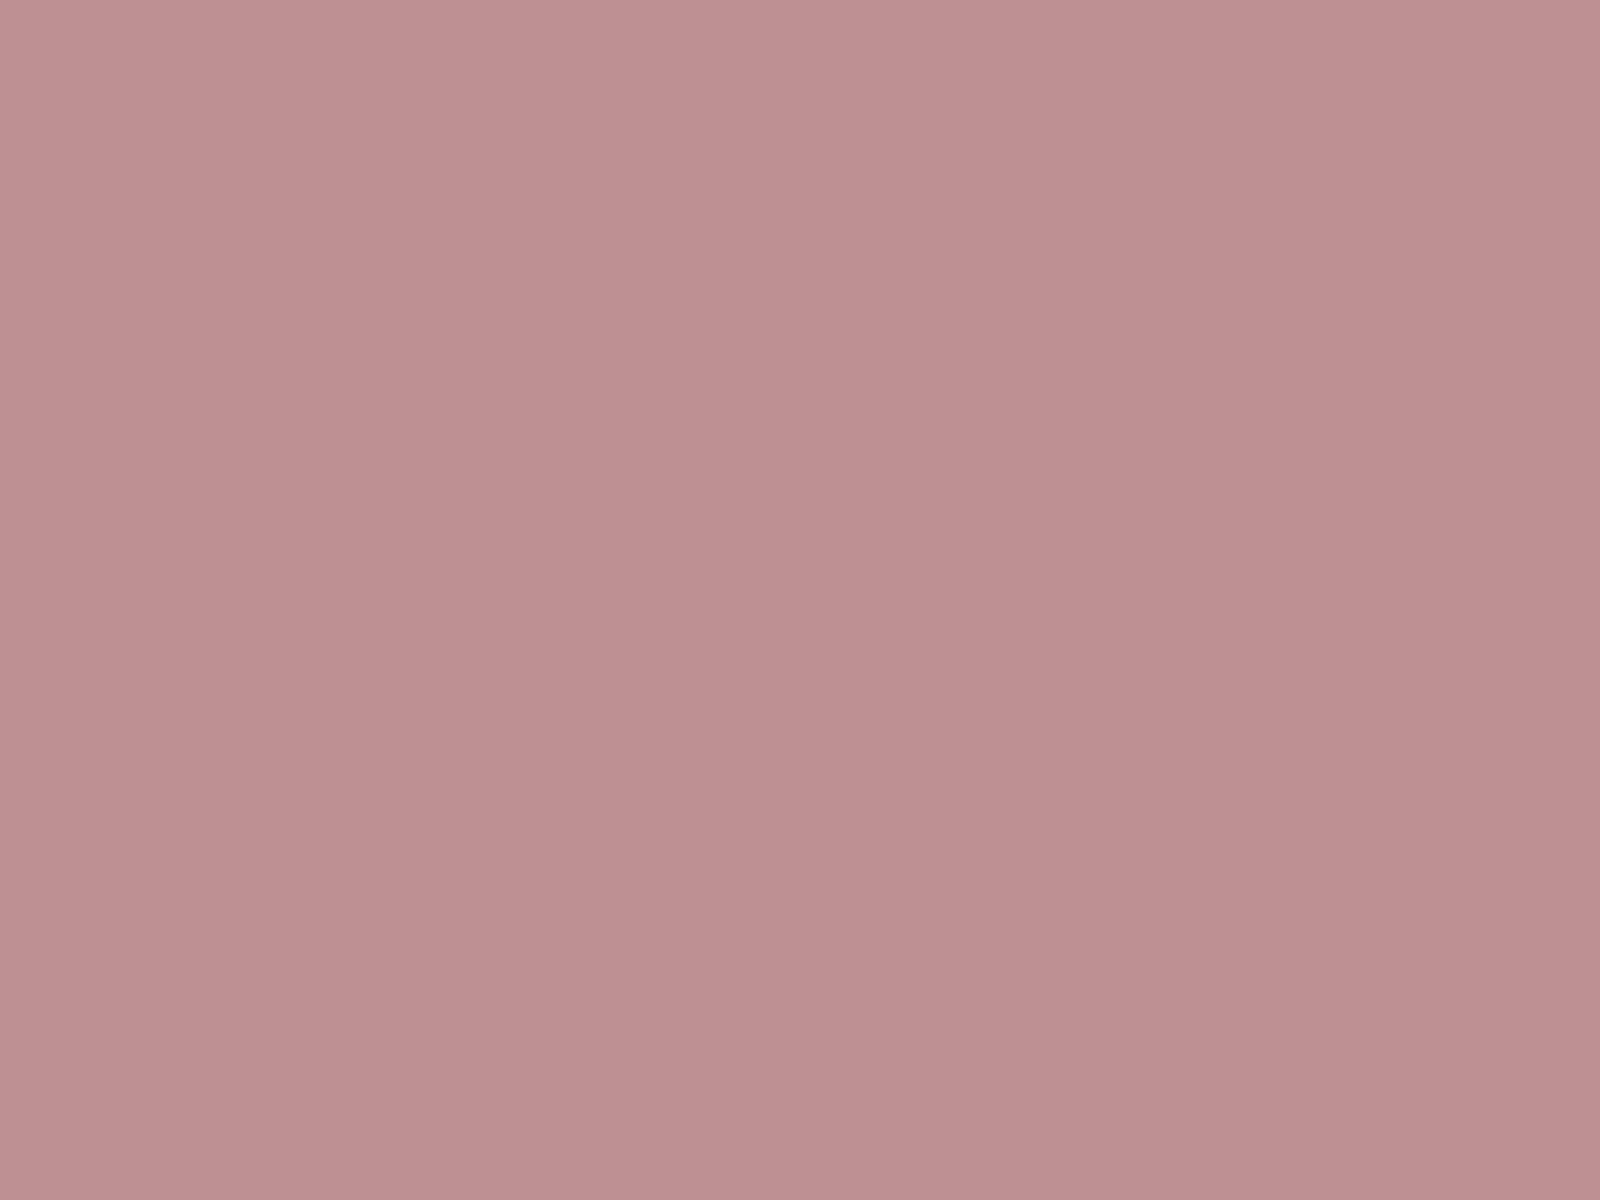 1600x1200 Rosy Brown Solid Color Background